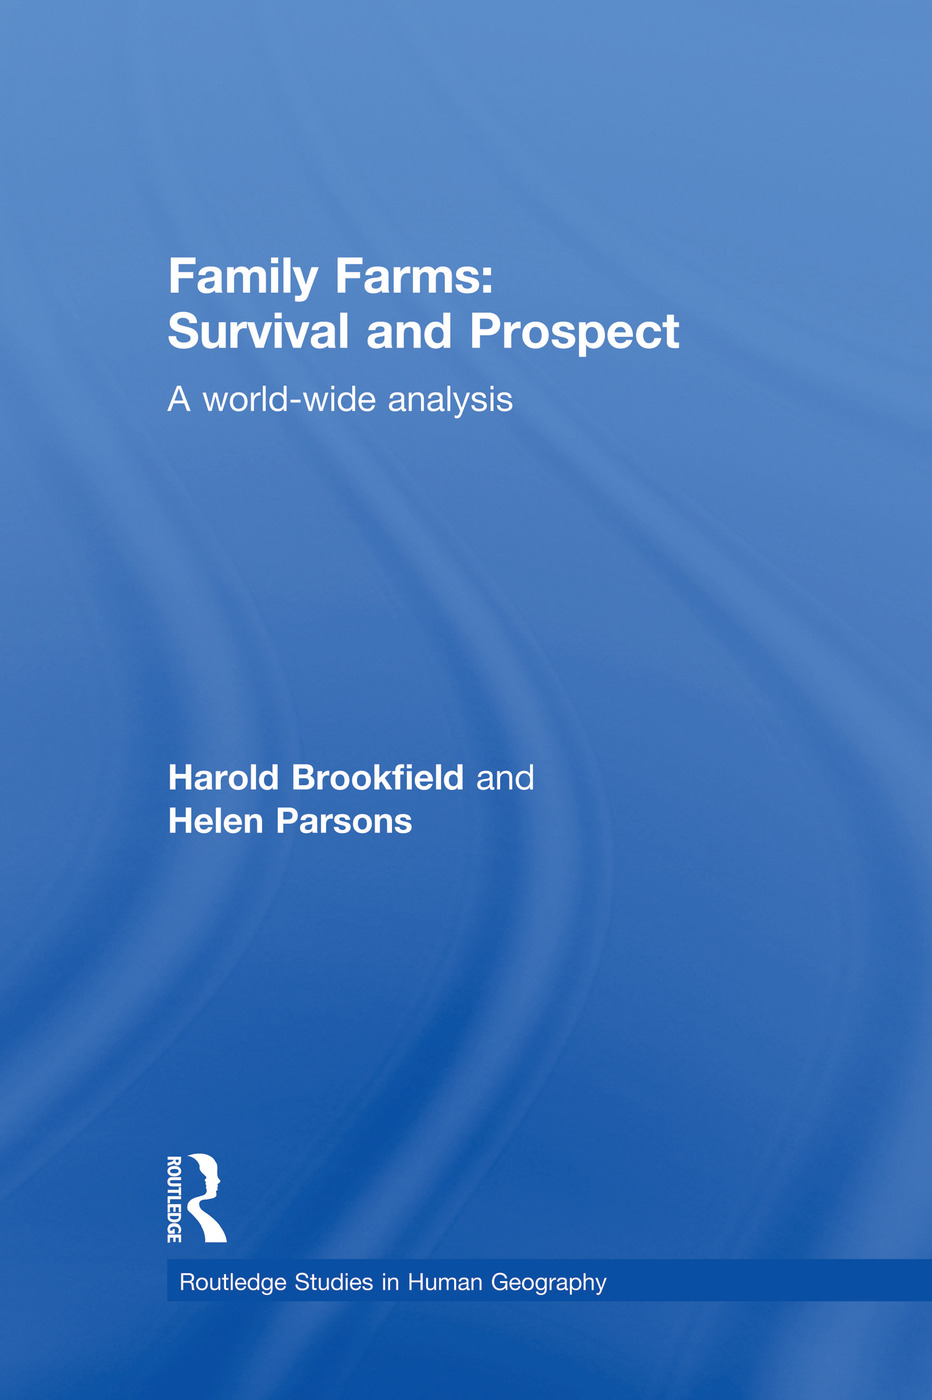 Family Farms: Survival and Prospect: A World-Wide Analysis book cover